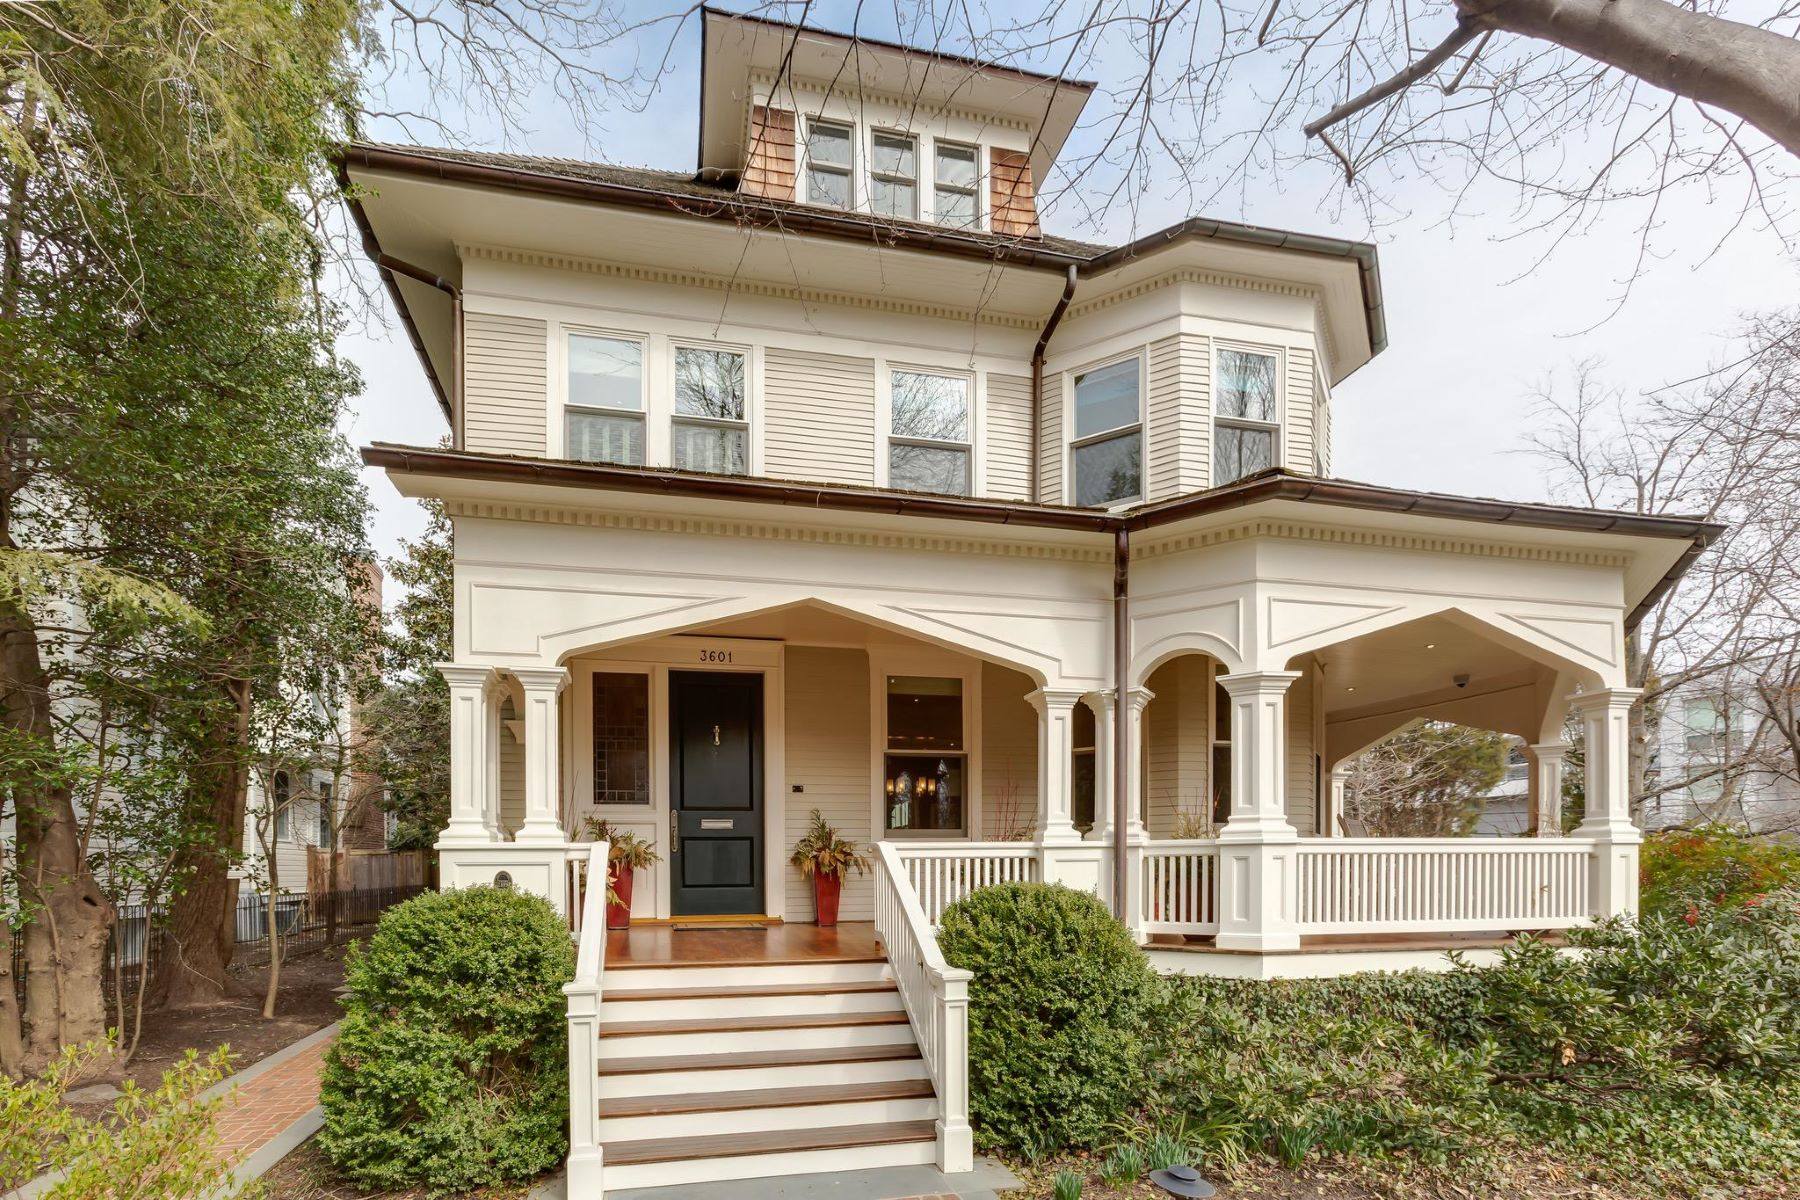 Single Family Home for Sale at 3601 Newark St NW Washington, District Of Columbia 20016 United States